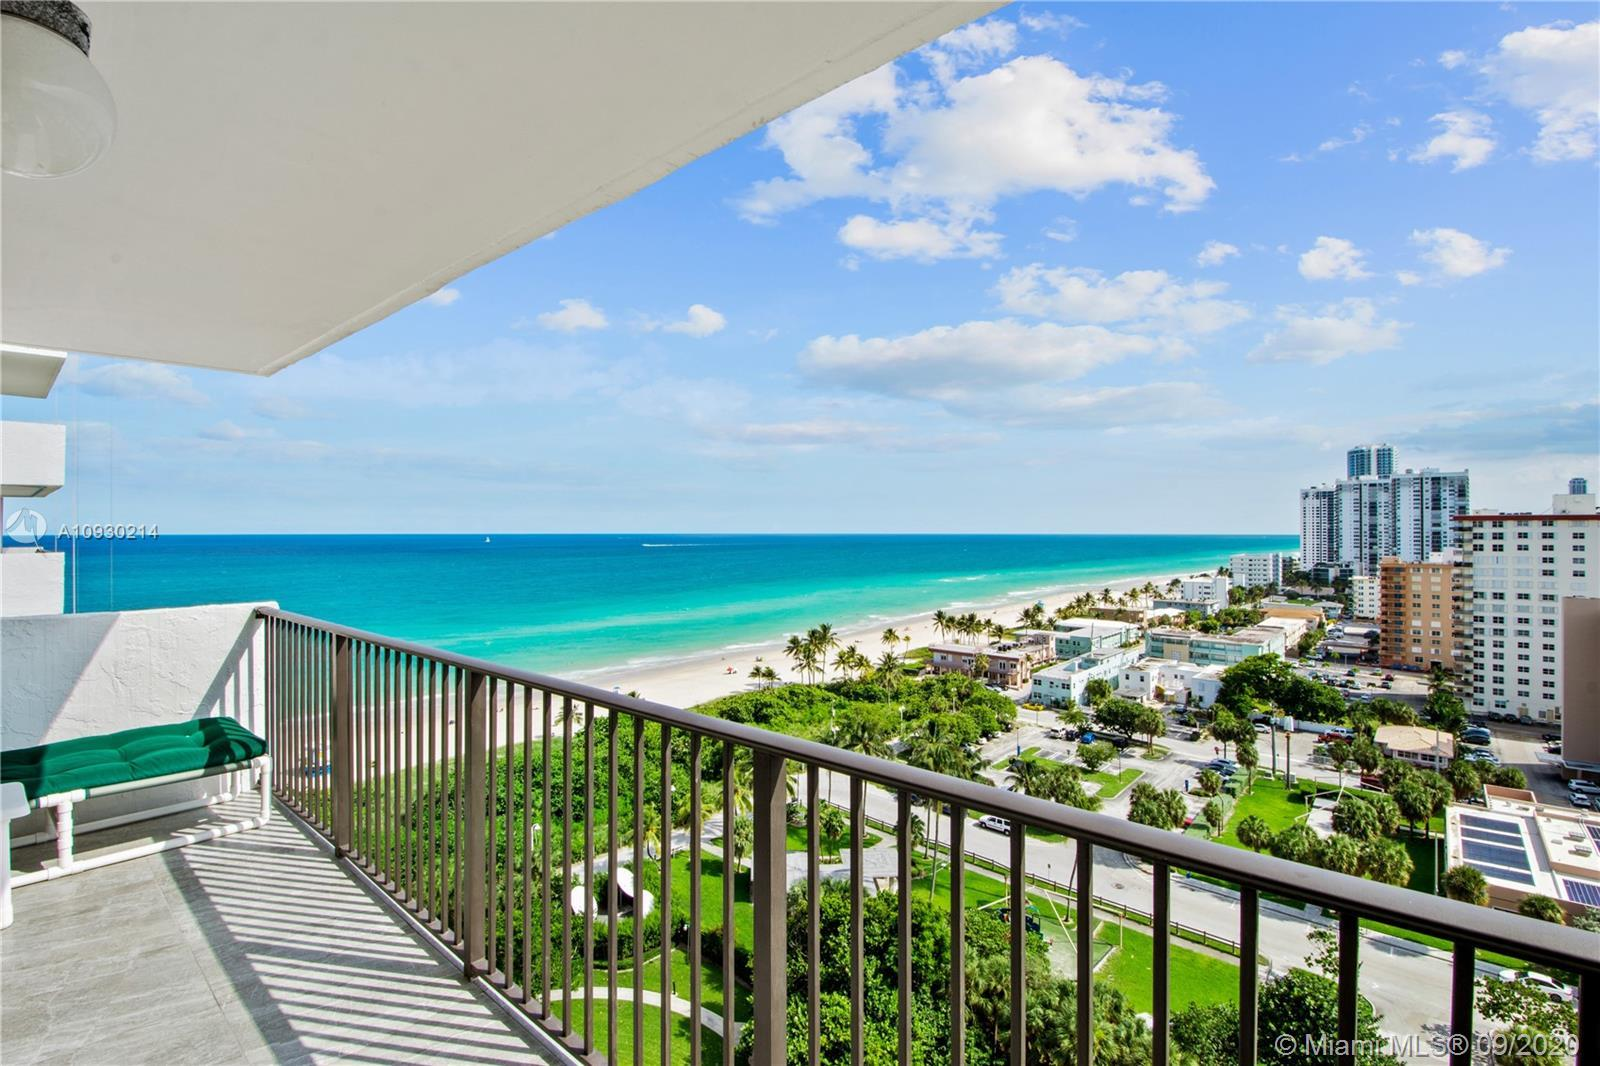 NESTLED BETWEEN THE OCEAN AND THE INTRACOASTAL, THIS 2-BEDROOM, 2 BATH CONDO HAS BEEN COMPLETELY REM